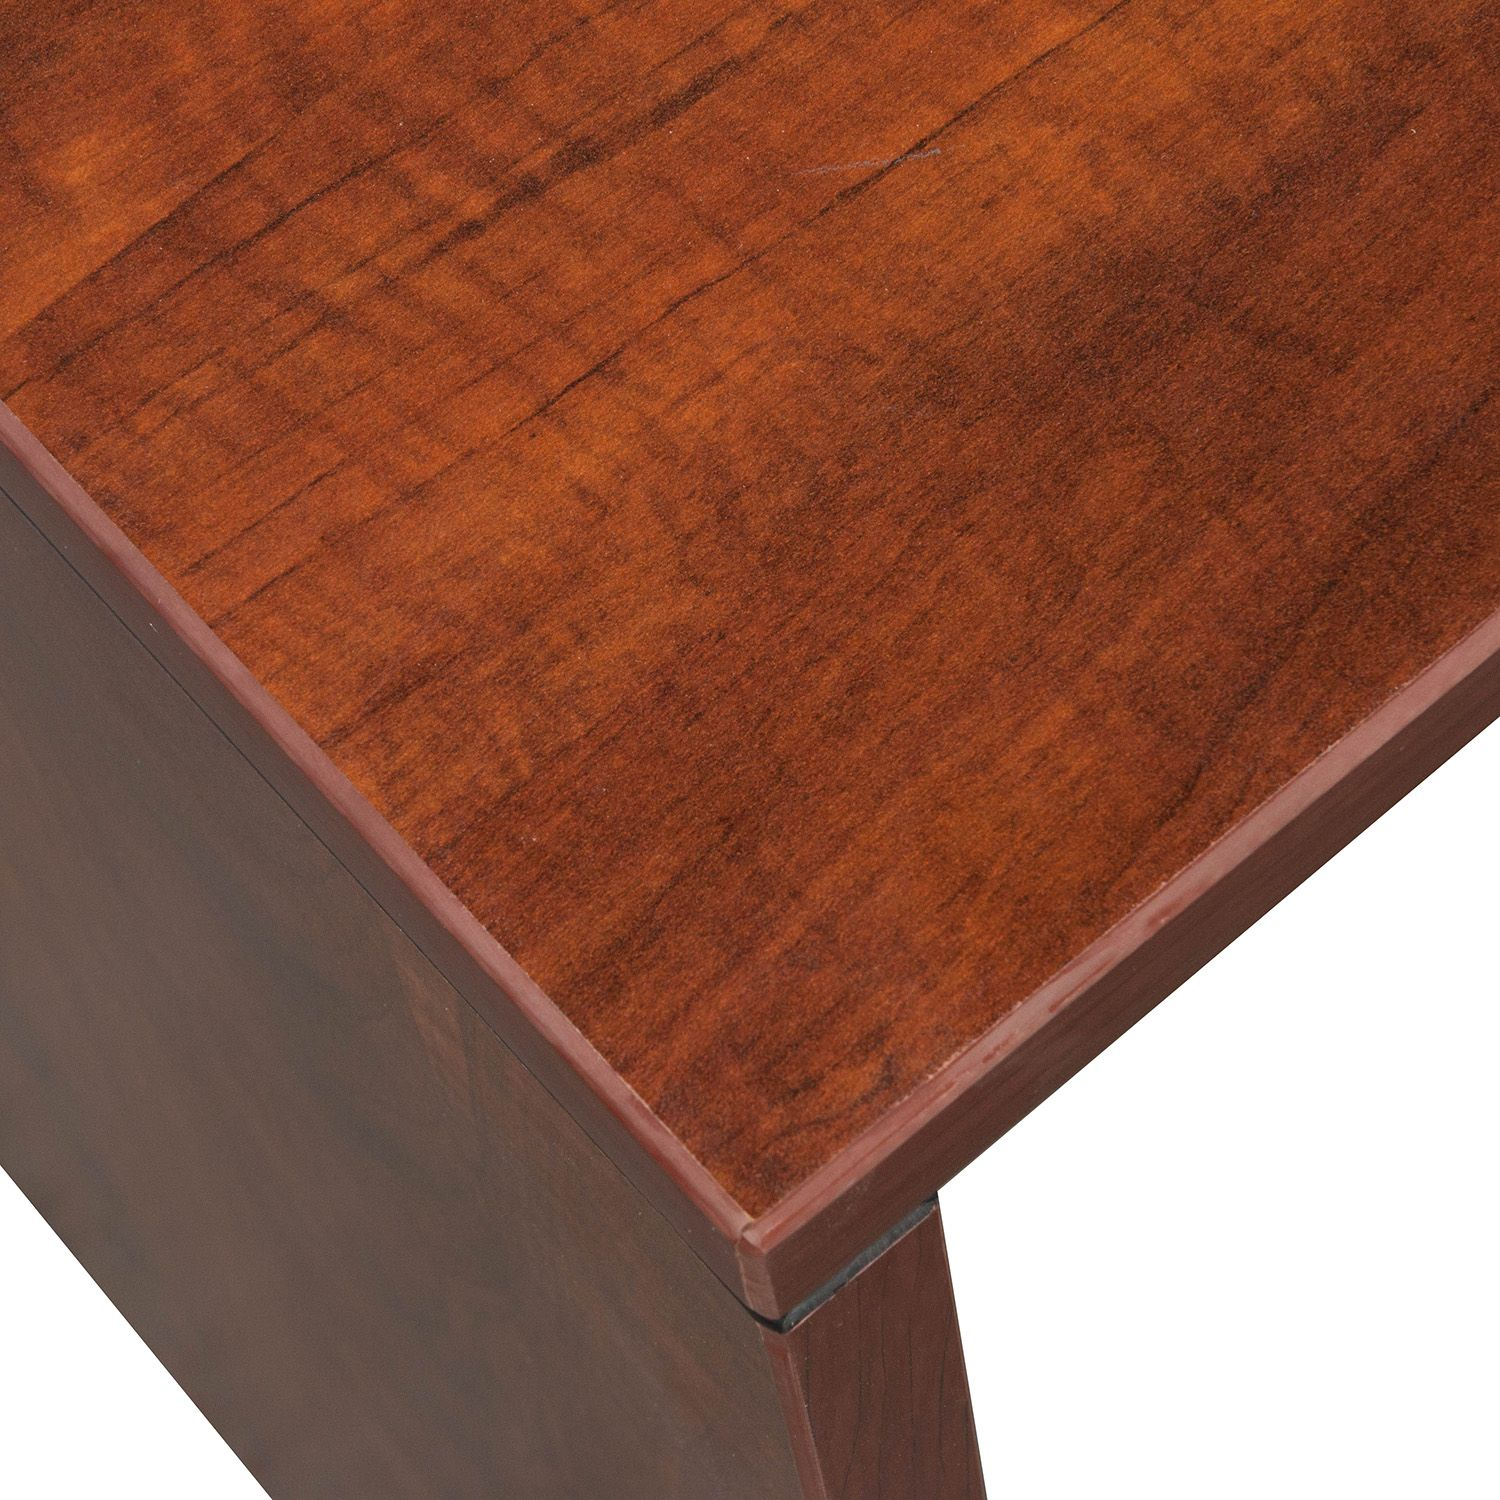 0921 new 2448 cherry laminate coffee table corner table cherry 0921 new 2448 cherry laminate coffee table corner table cherry wood watchthetrailerfo